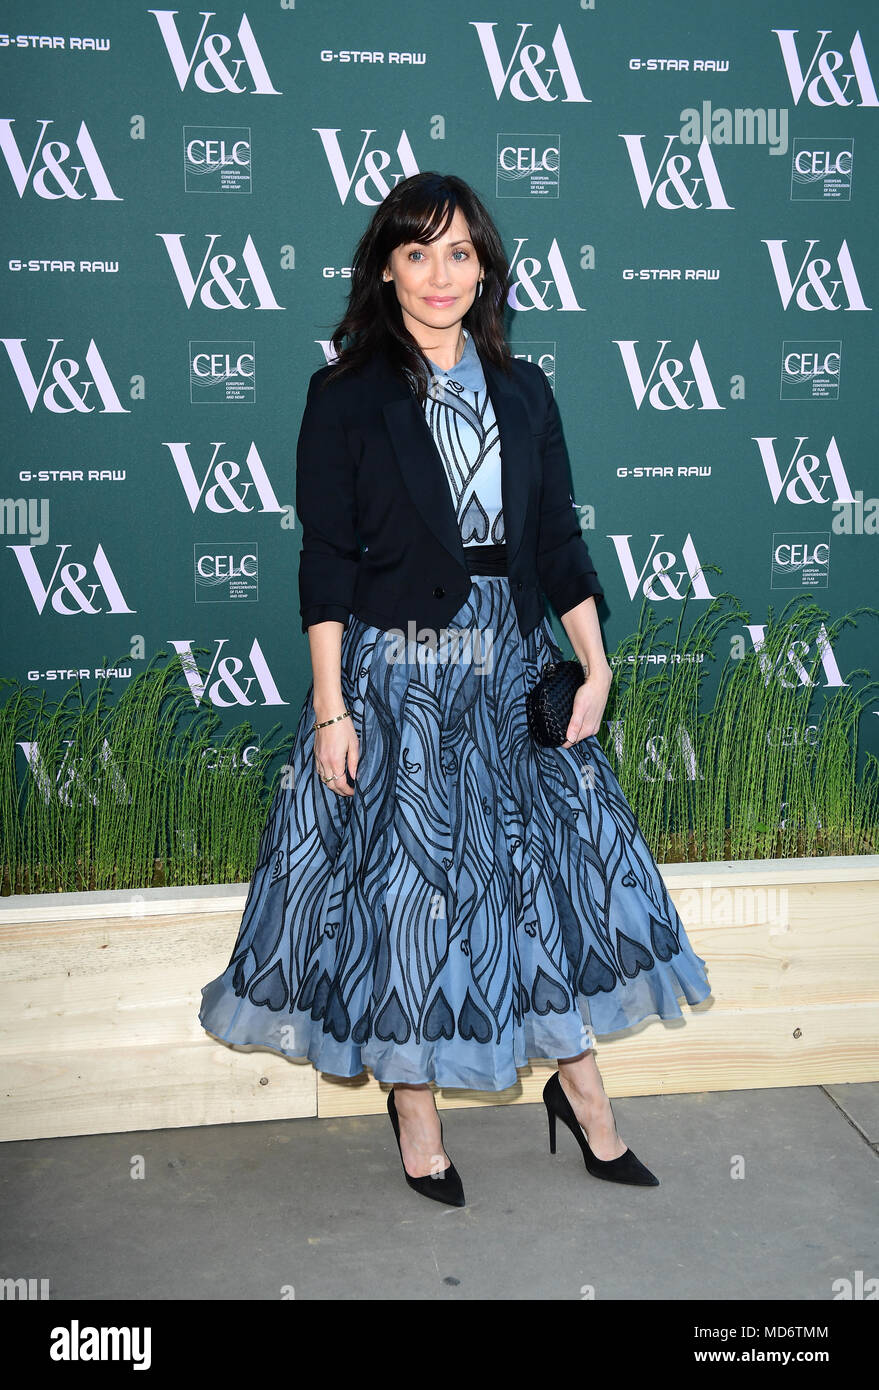 Natalie Imbruglia attending the VIP preview for the V&A Museum\'s ...